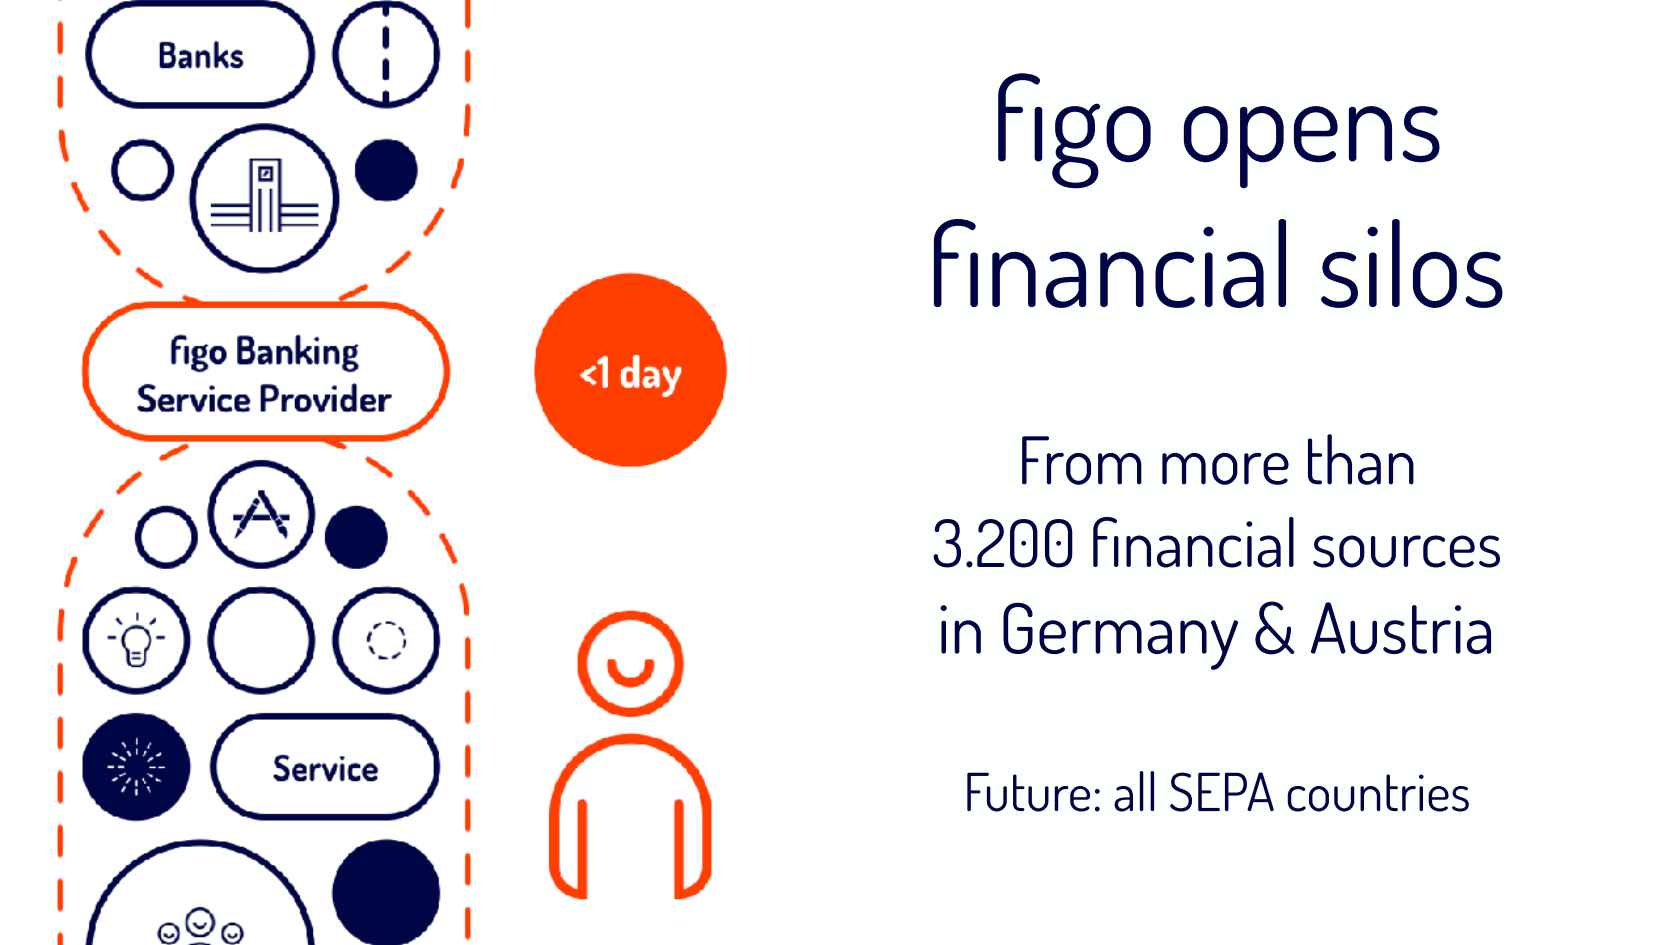 Figo Gmbh exles on how to thrive through banking apis